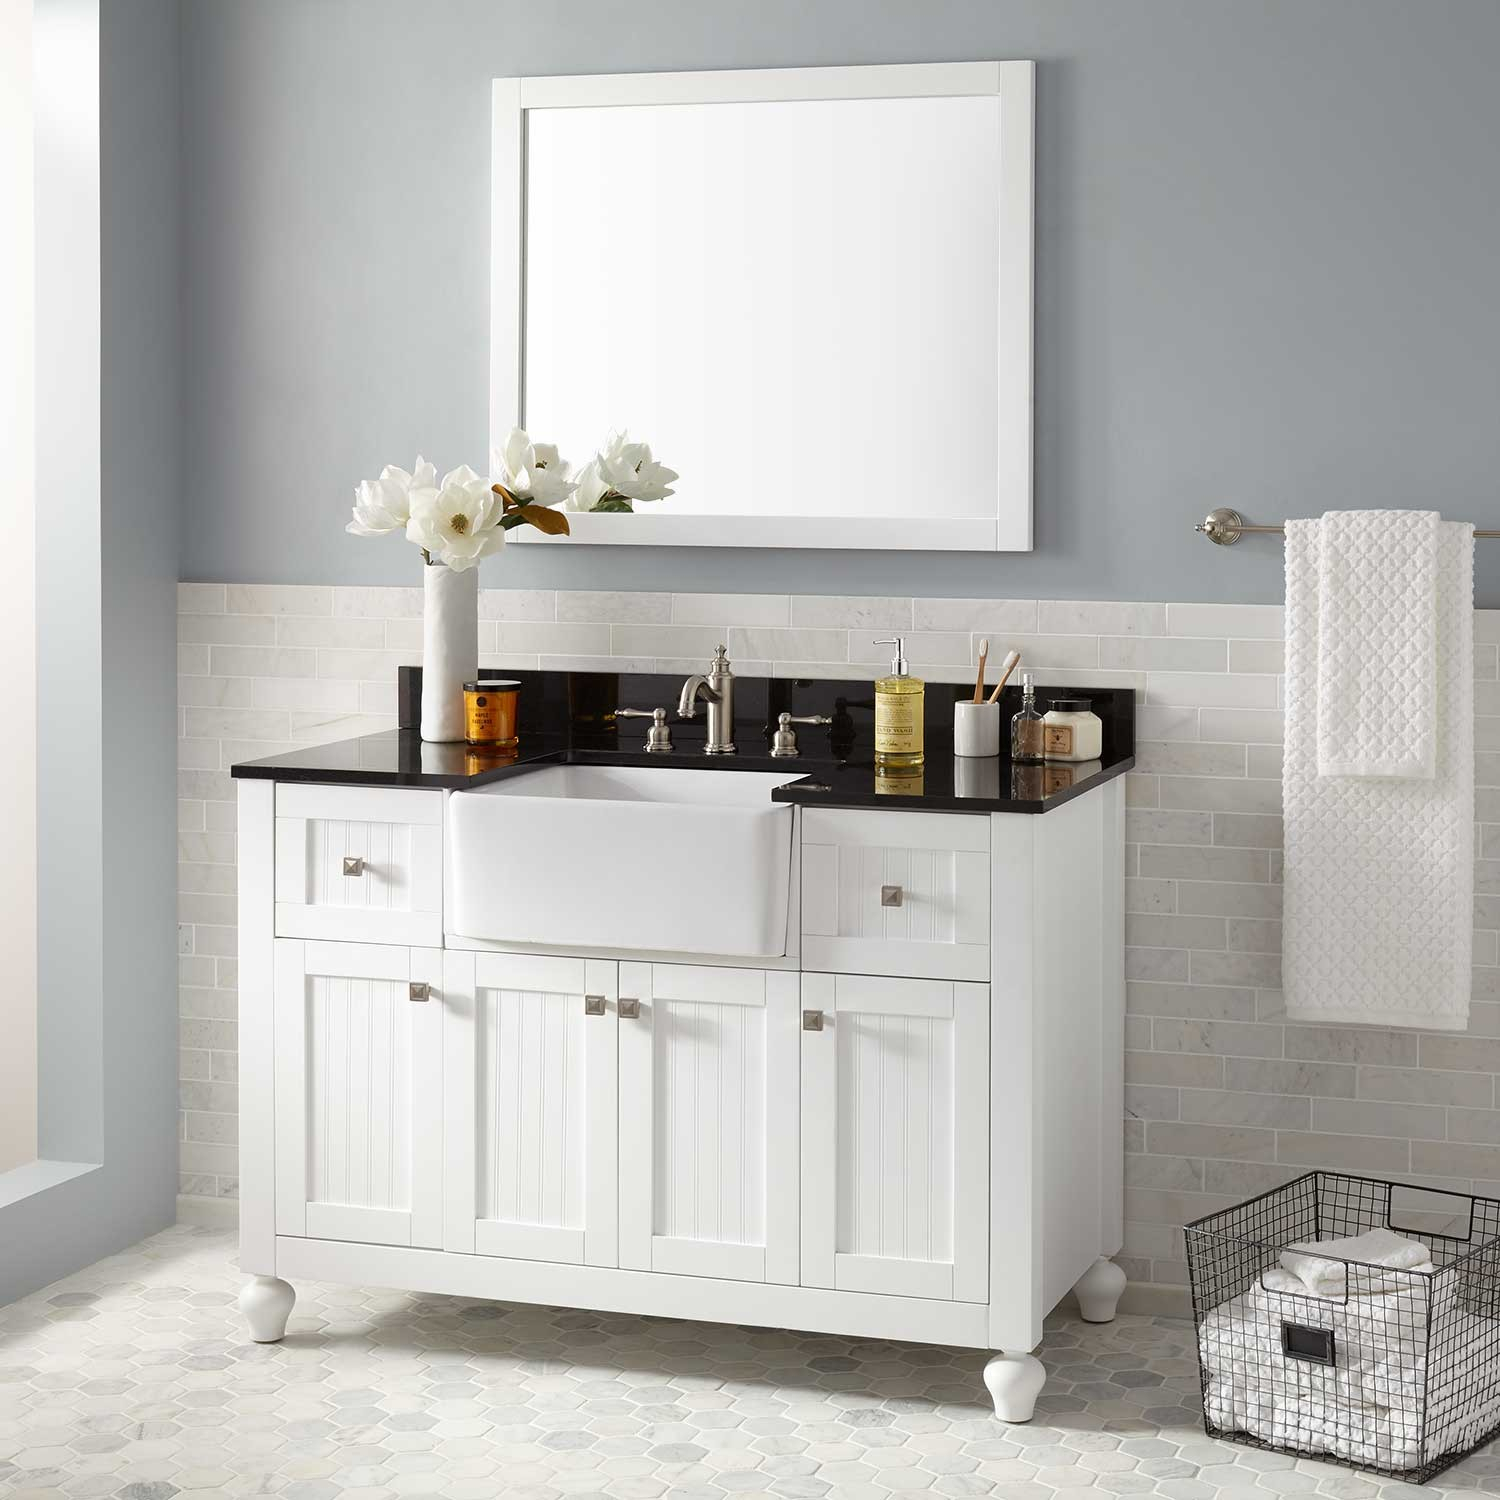 "Amazing 48"" Nellie Farmhouse Sink Vanity - White - Bathroom within Good quality Bathroom Farm Sink Vanity"